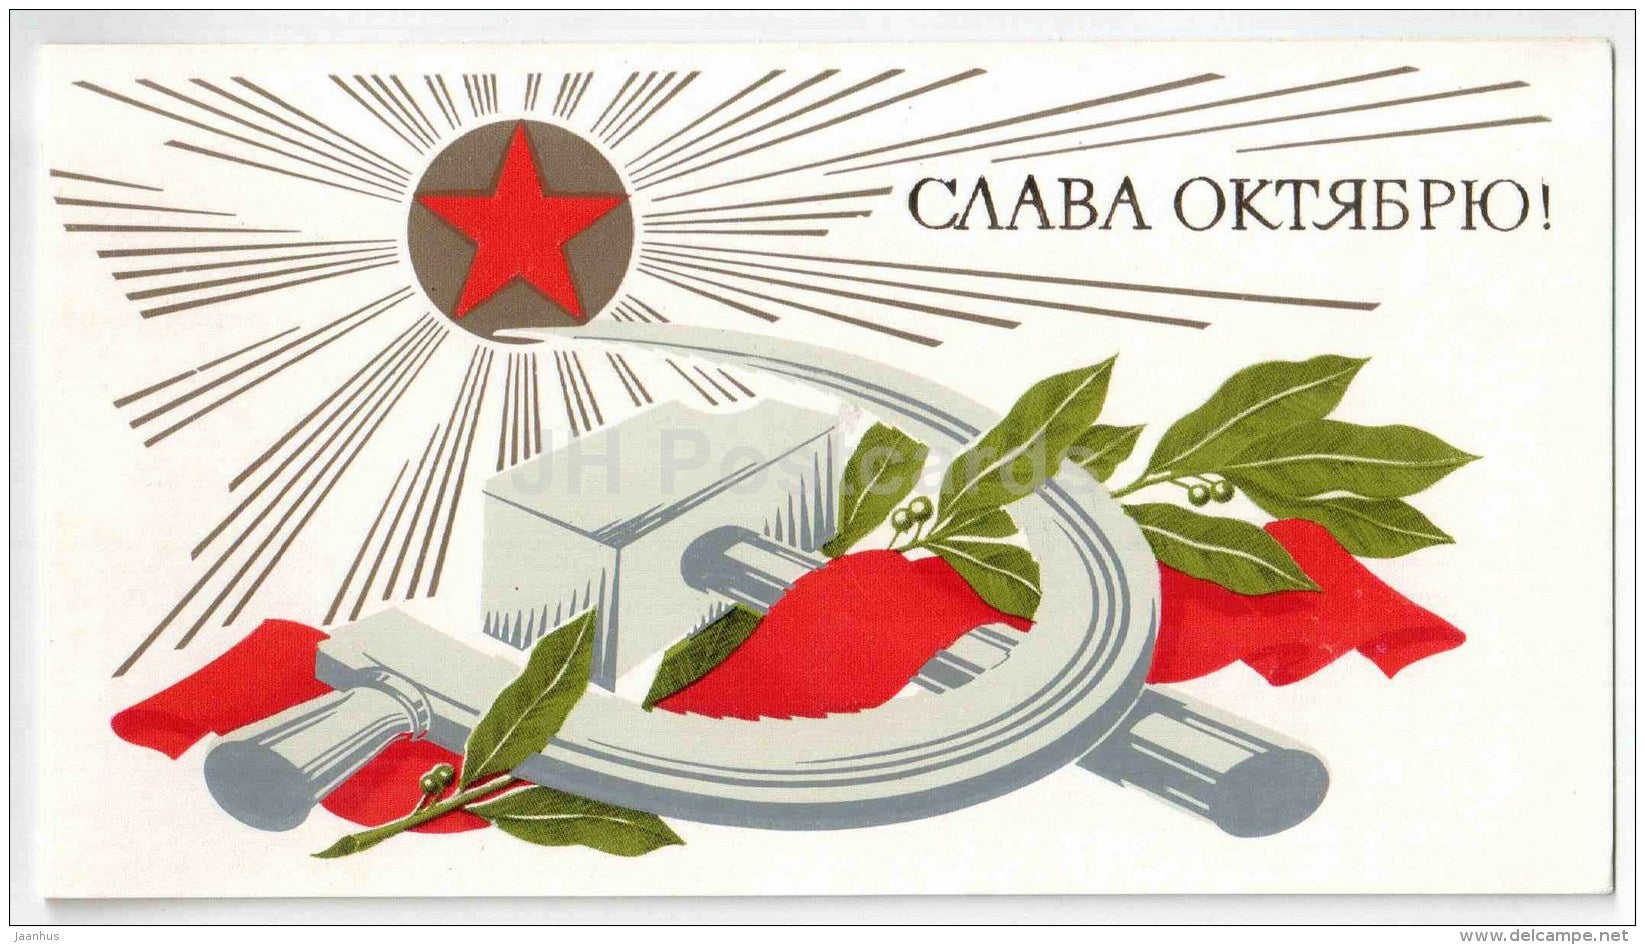 October Revolution Anniversary greeting card by V. Lisetsky - Kremlin - hammer and sickle - 1981 - Russia USSR - unused - JH Postcards